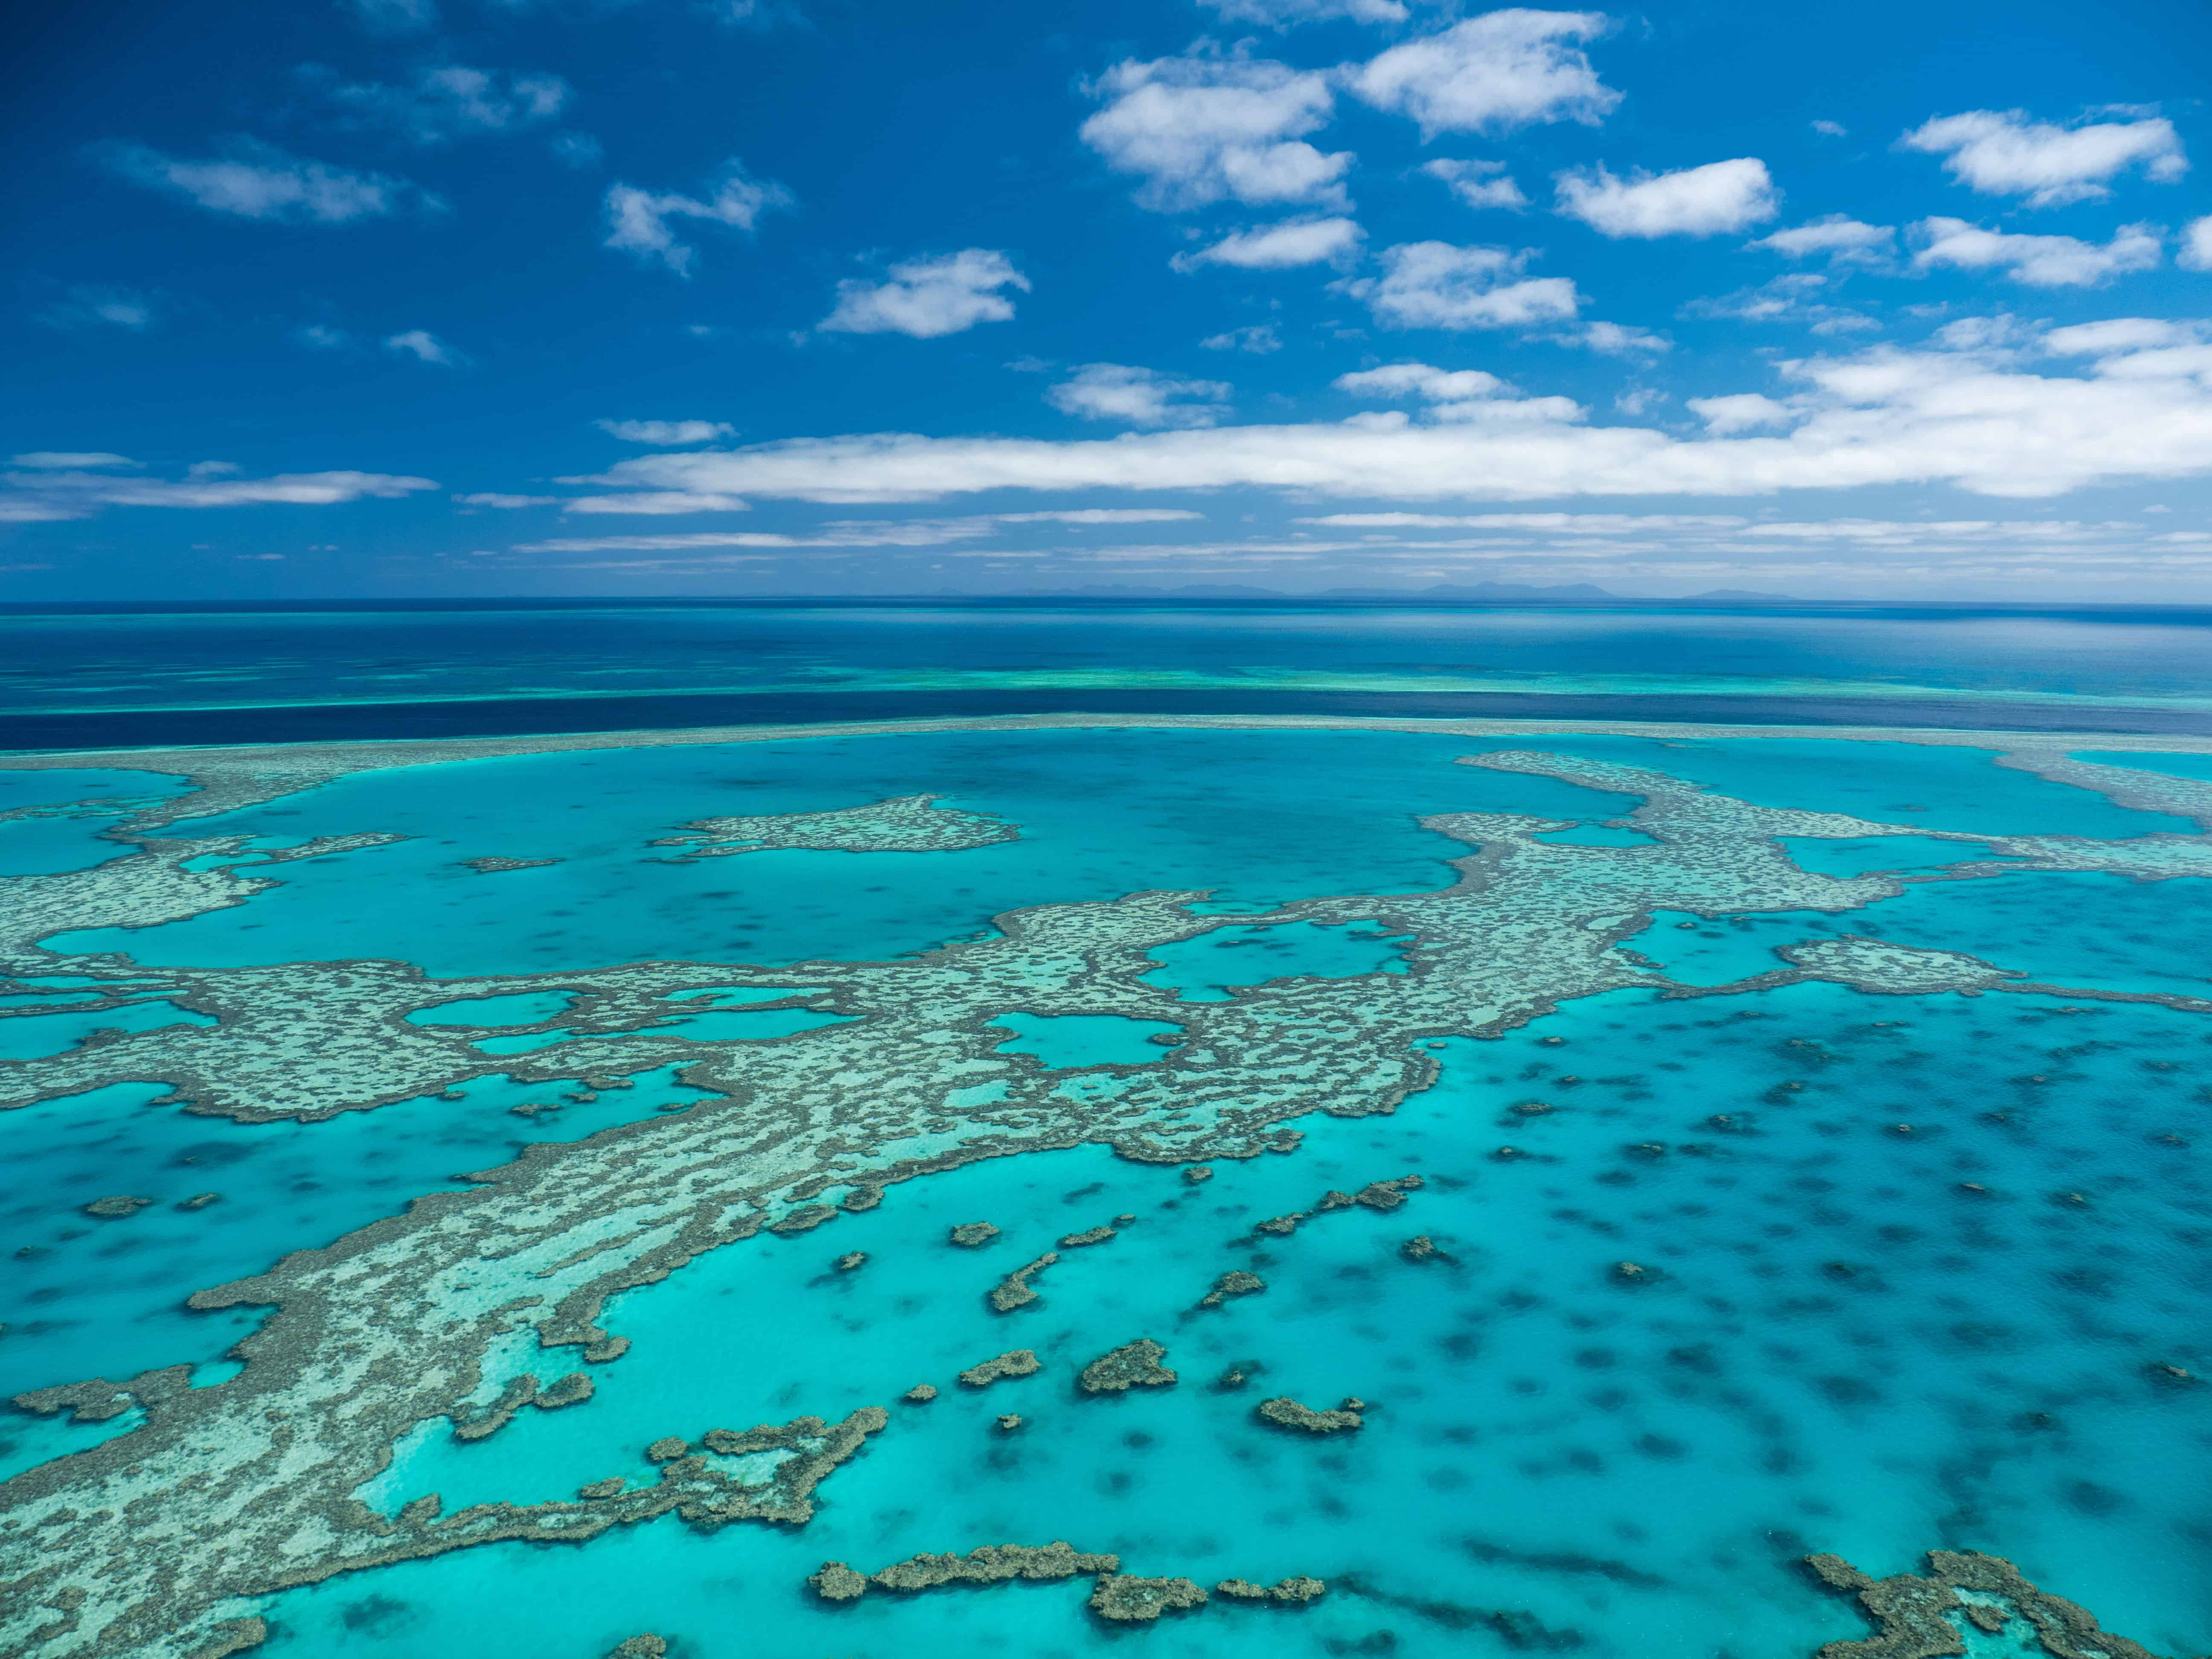 aerial image of the Great Barrier Reef